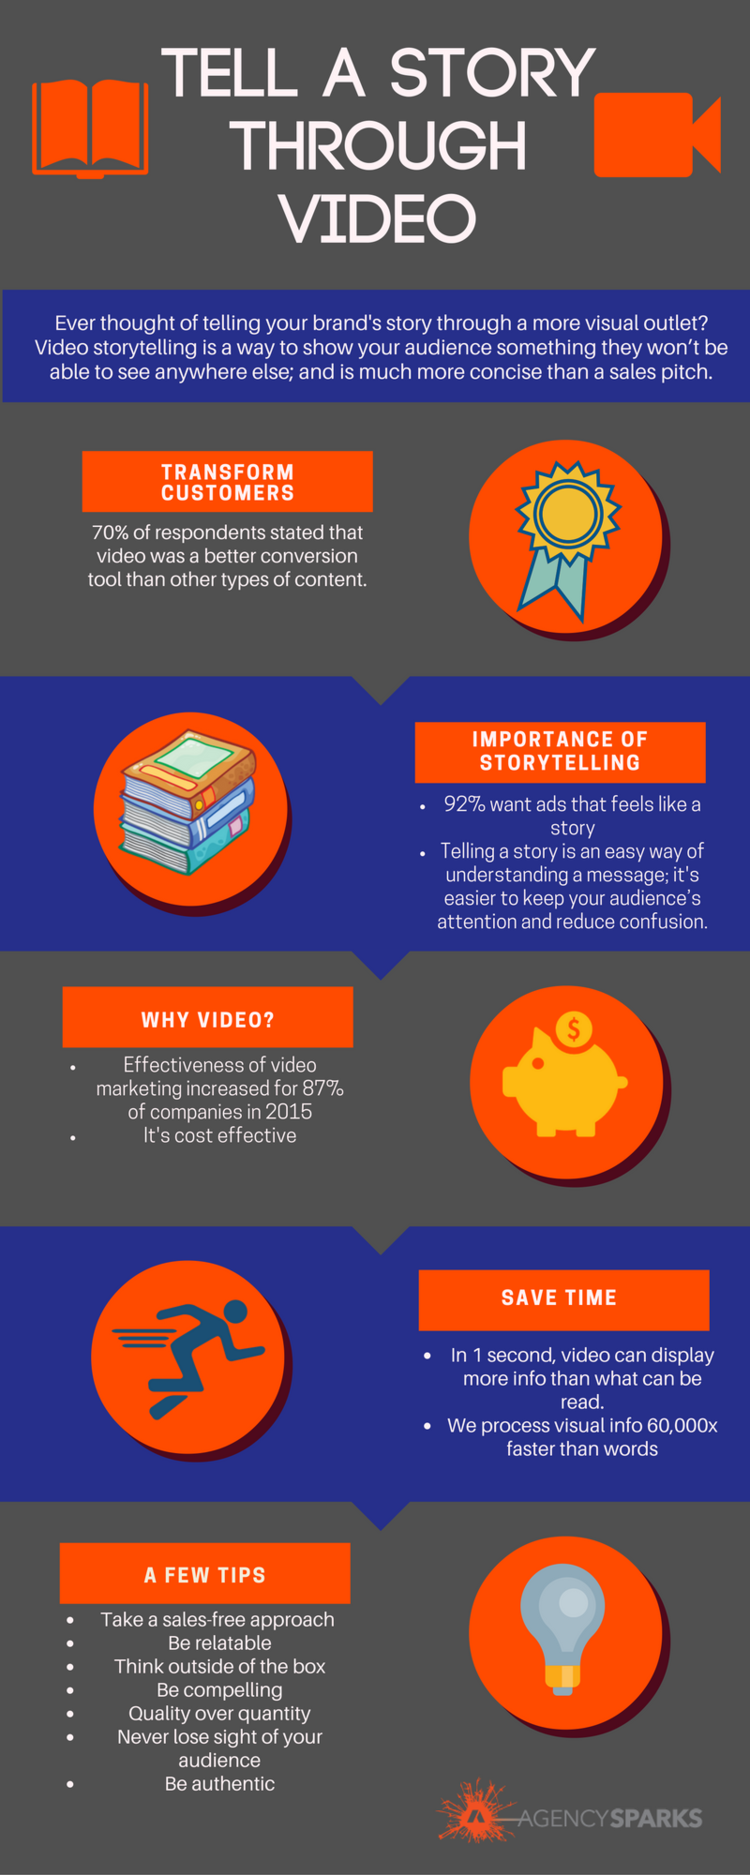 AgencySparks infographic explaining how to tell a story though video content.